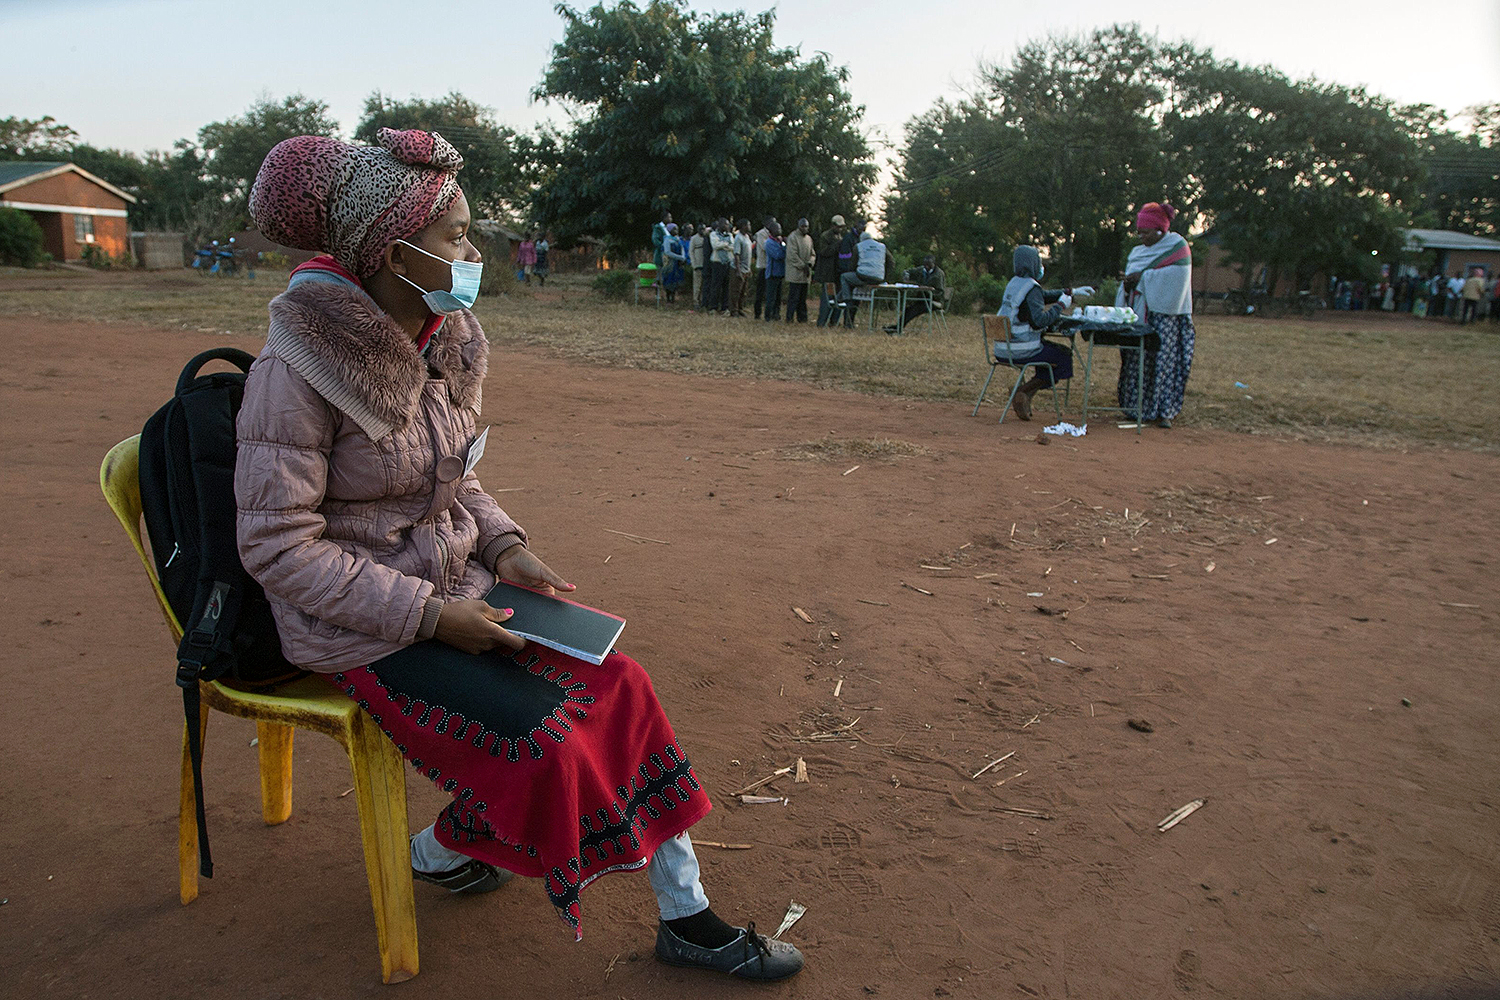 An elections party monitor watches over queues of voters during the Malawi presidential elections in Lilongwe on June 23. AMOS GUMULIRA/AFP via Getty Images